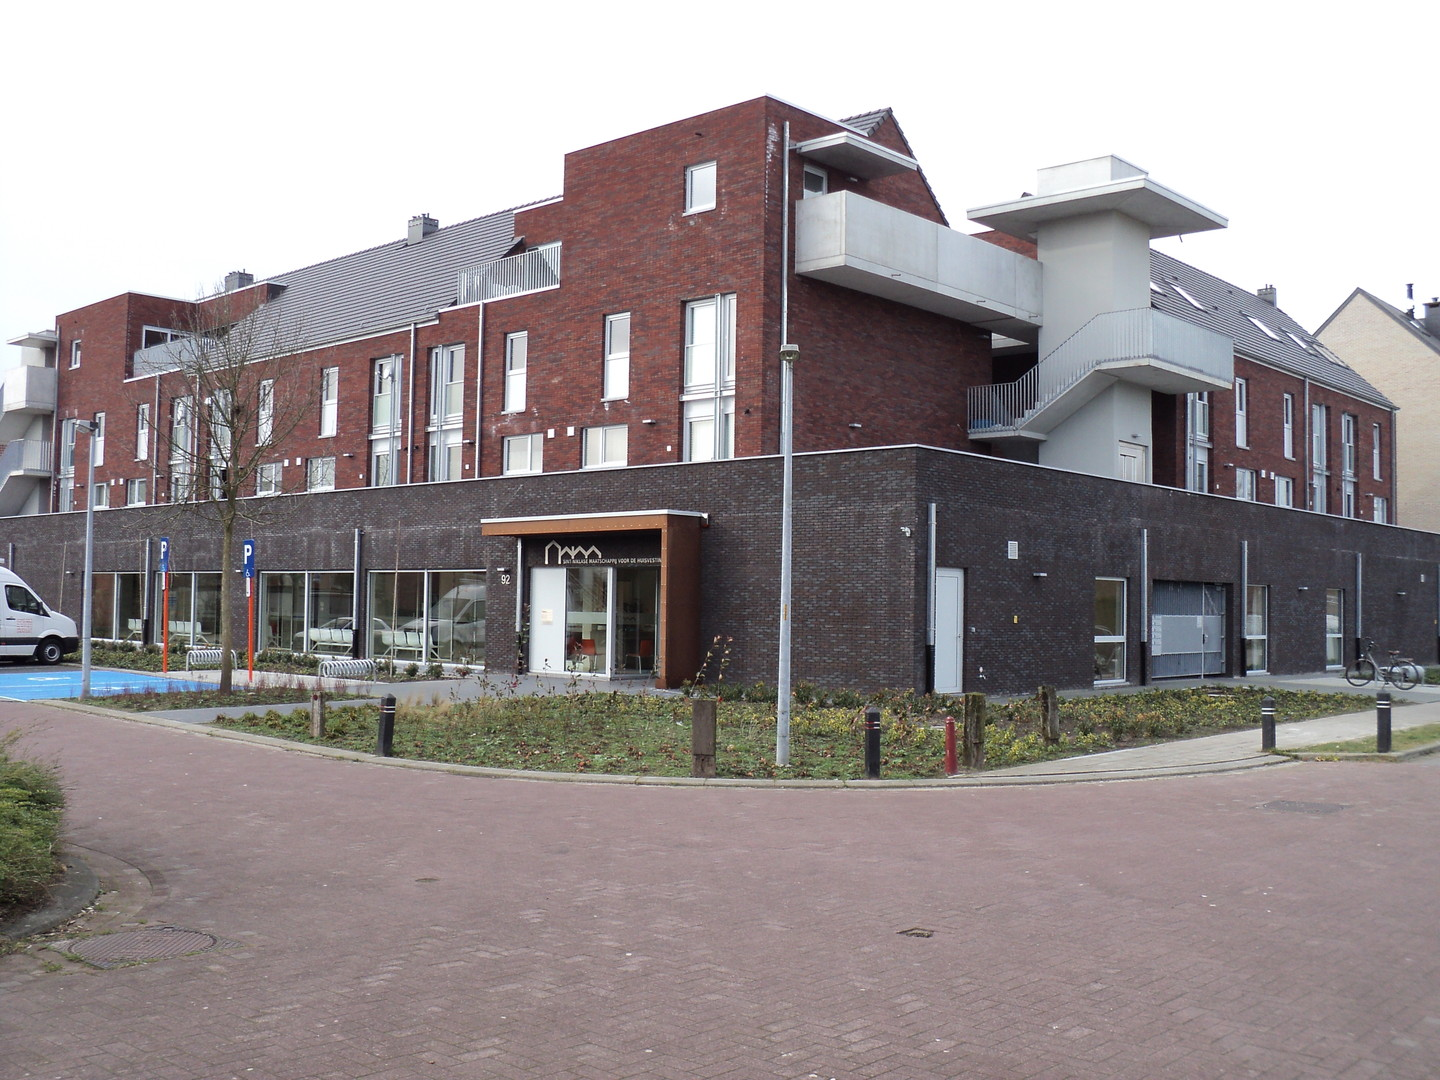 William Griffithsstraat 92, Sint-Niklaas